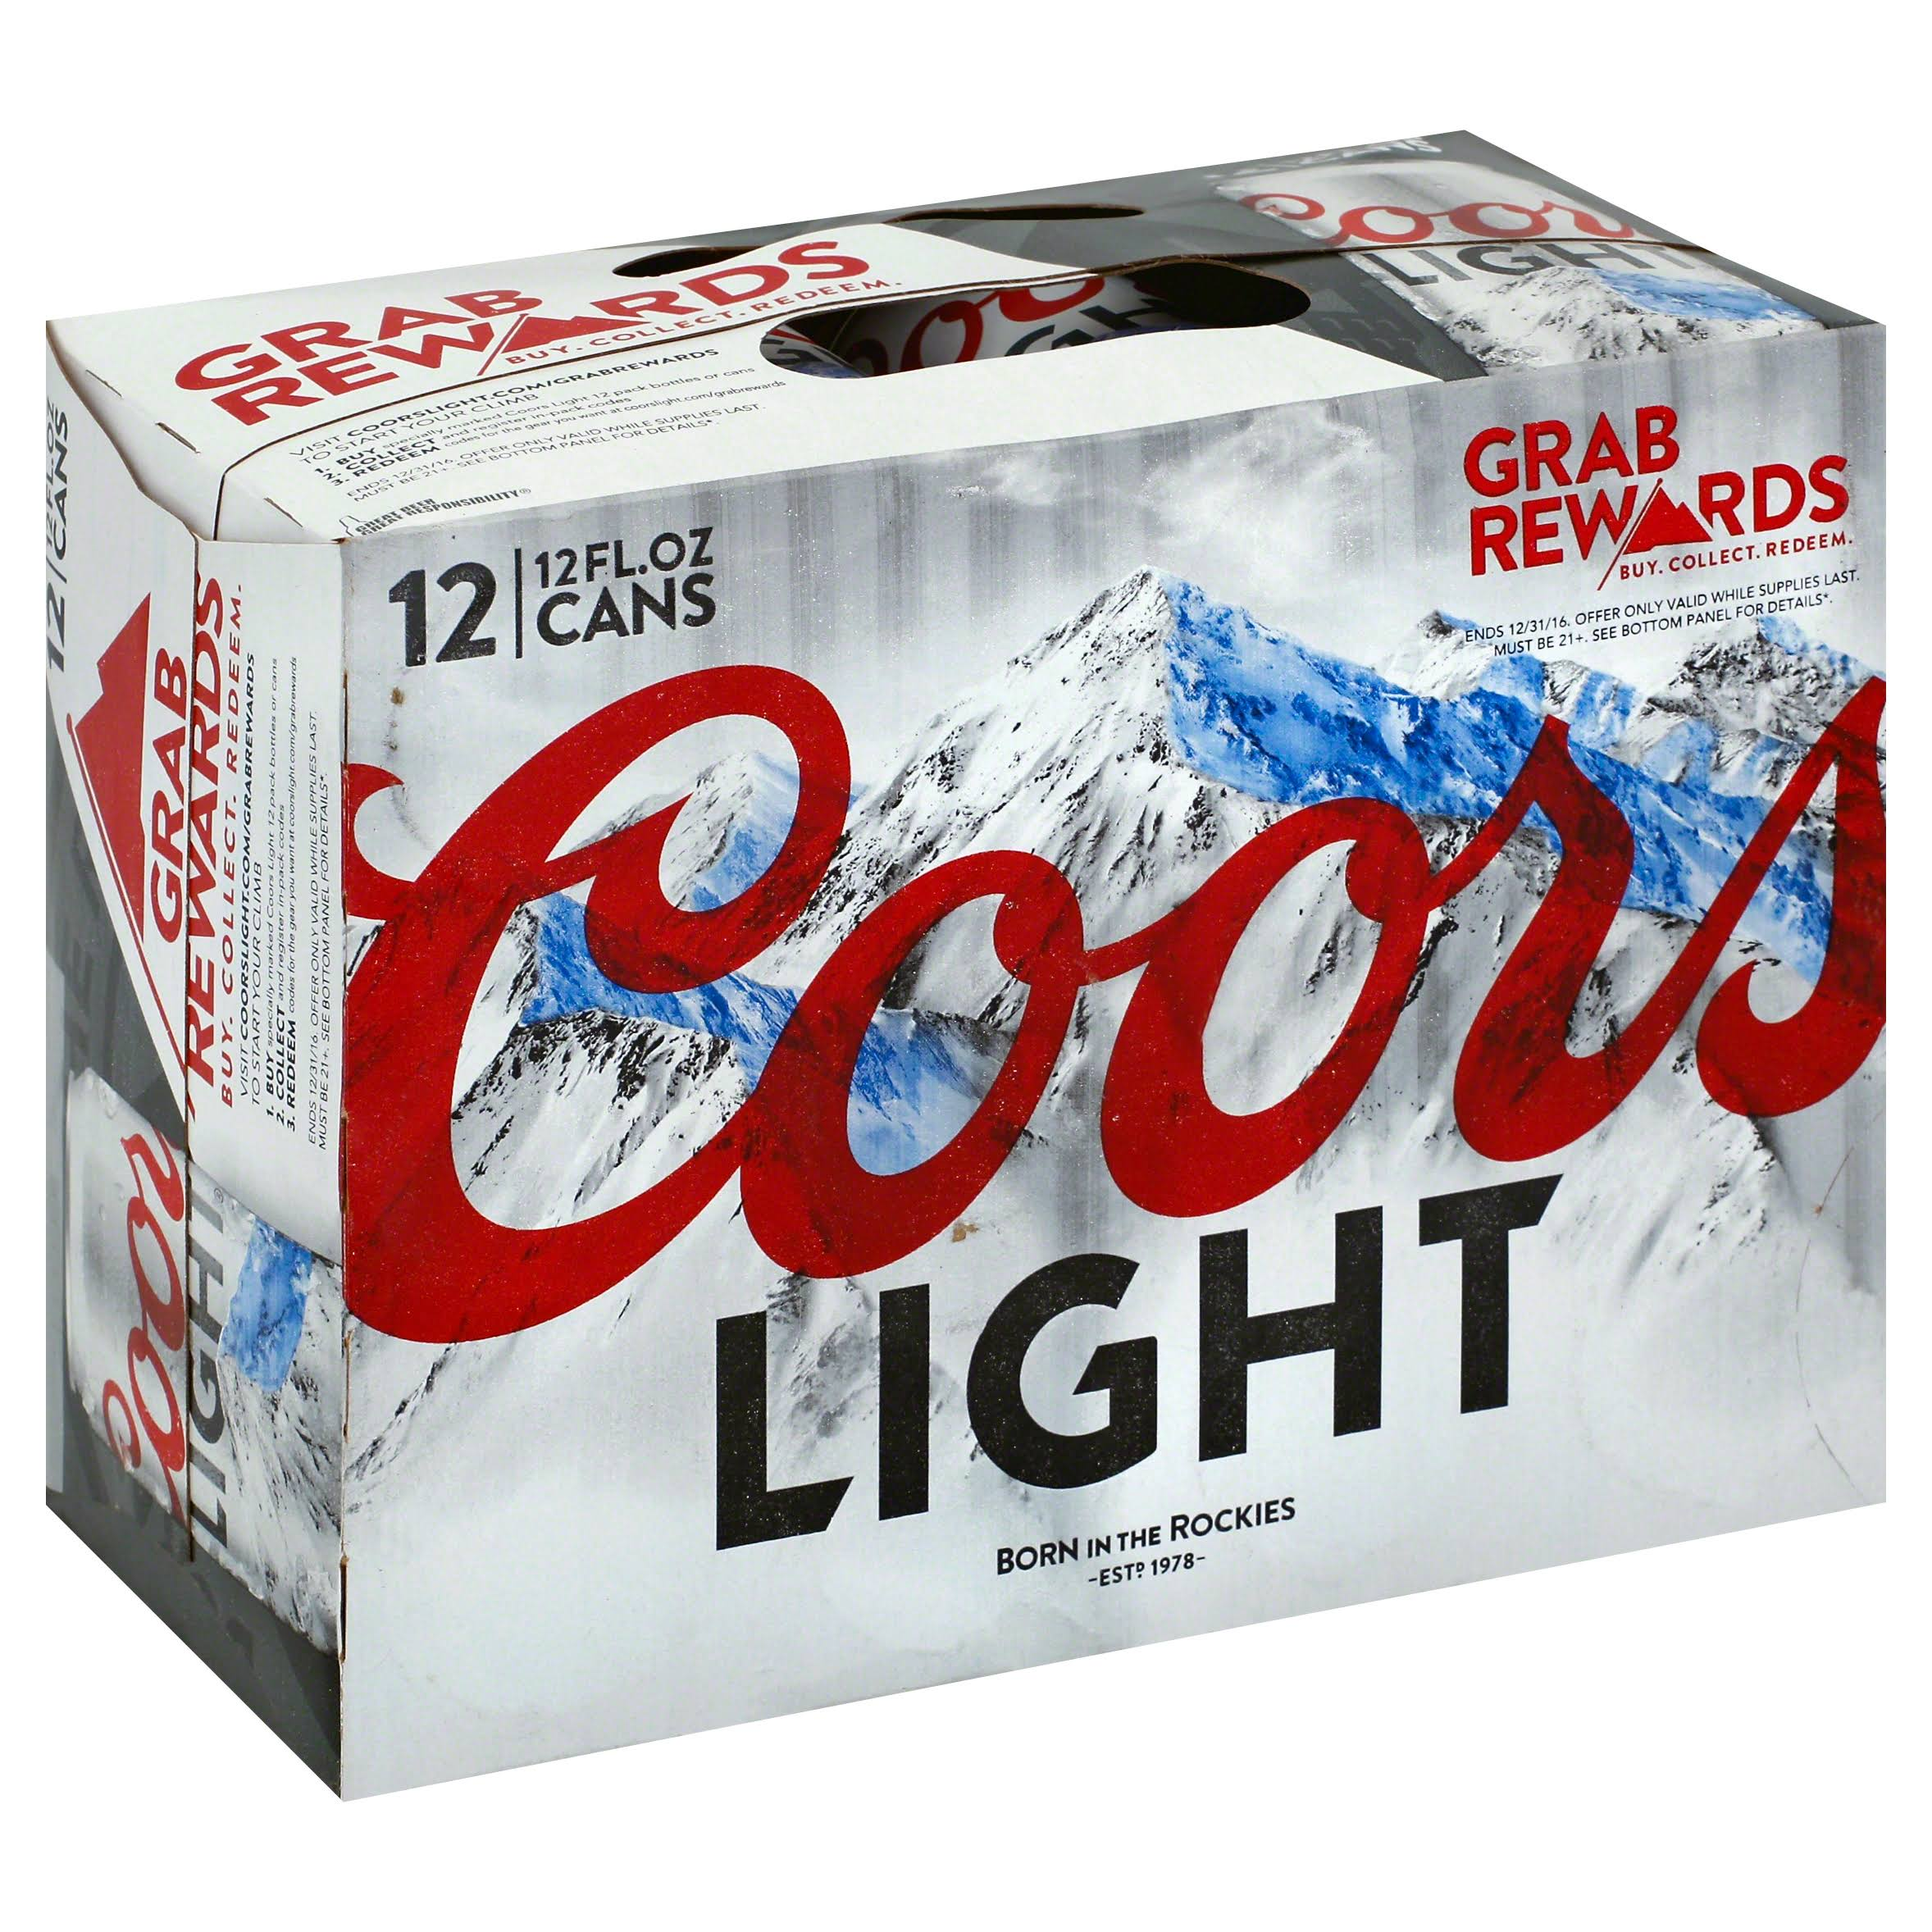 Coors Light Beer, Light - 12 pack, 12 fl oz cans